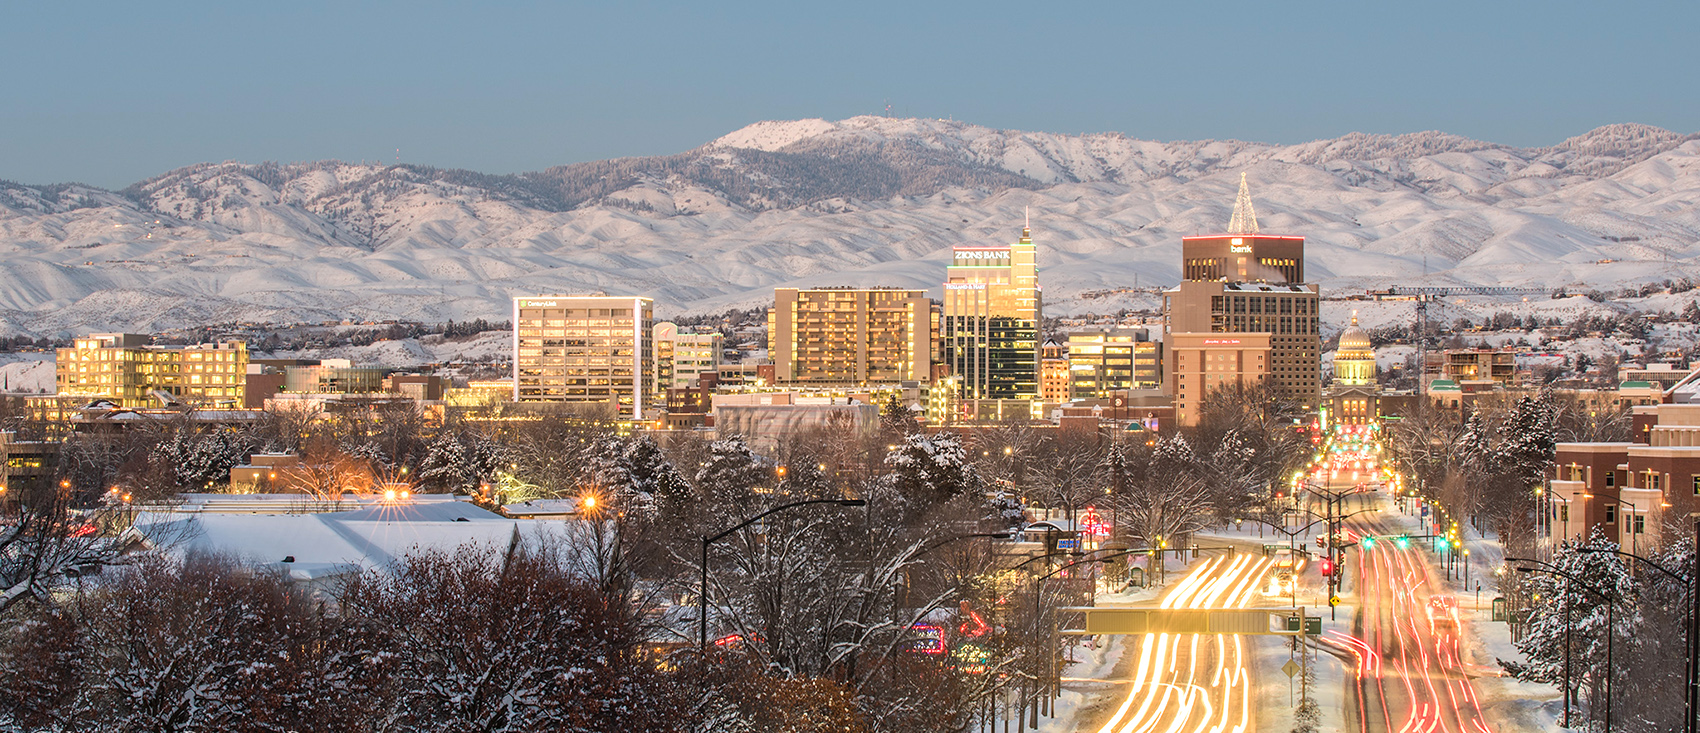 Boise, Idaho Skyline Photo